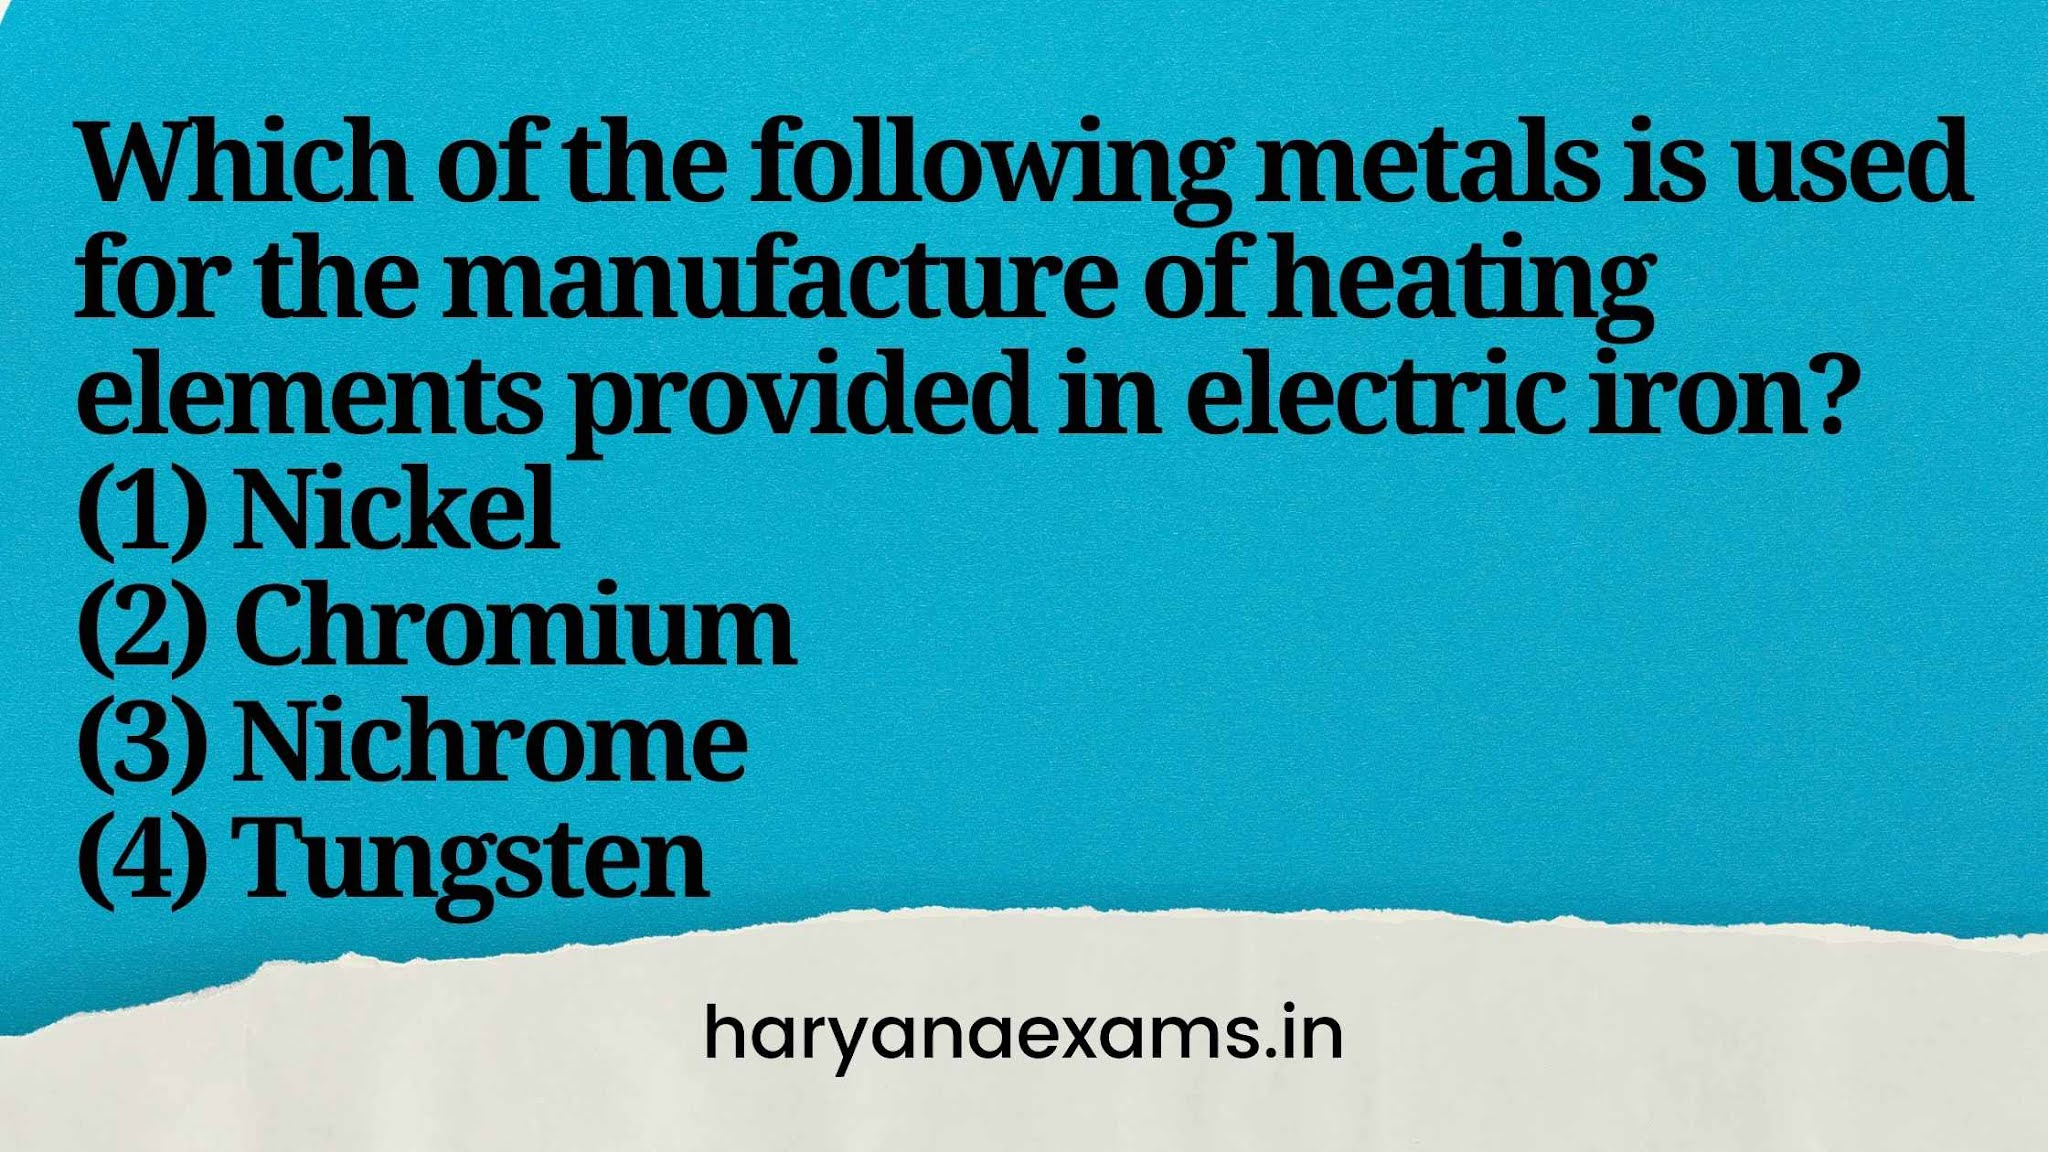 Which of the following metals is used for the manufacture of heating elements provided in electric iron?   (1) Nickel   (2) Chromium   (3) Nichrome   (4) Tungsten